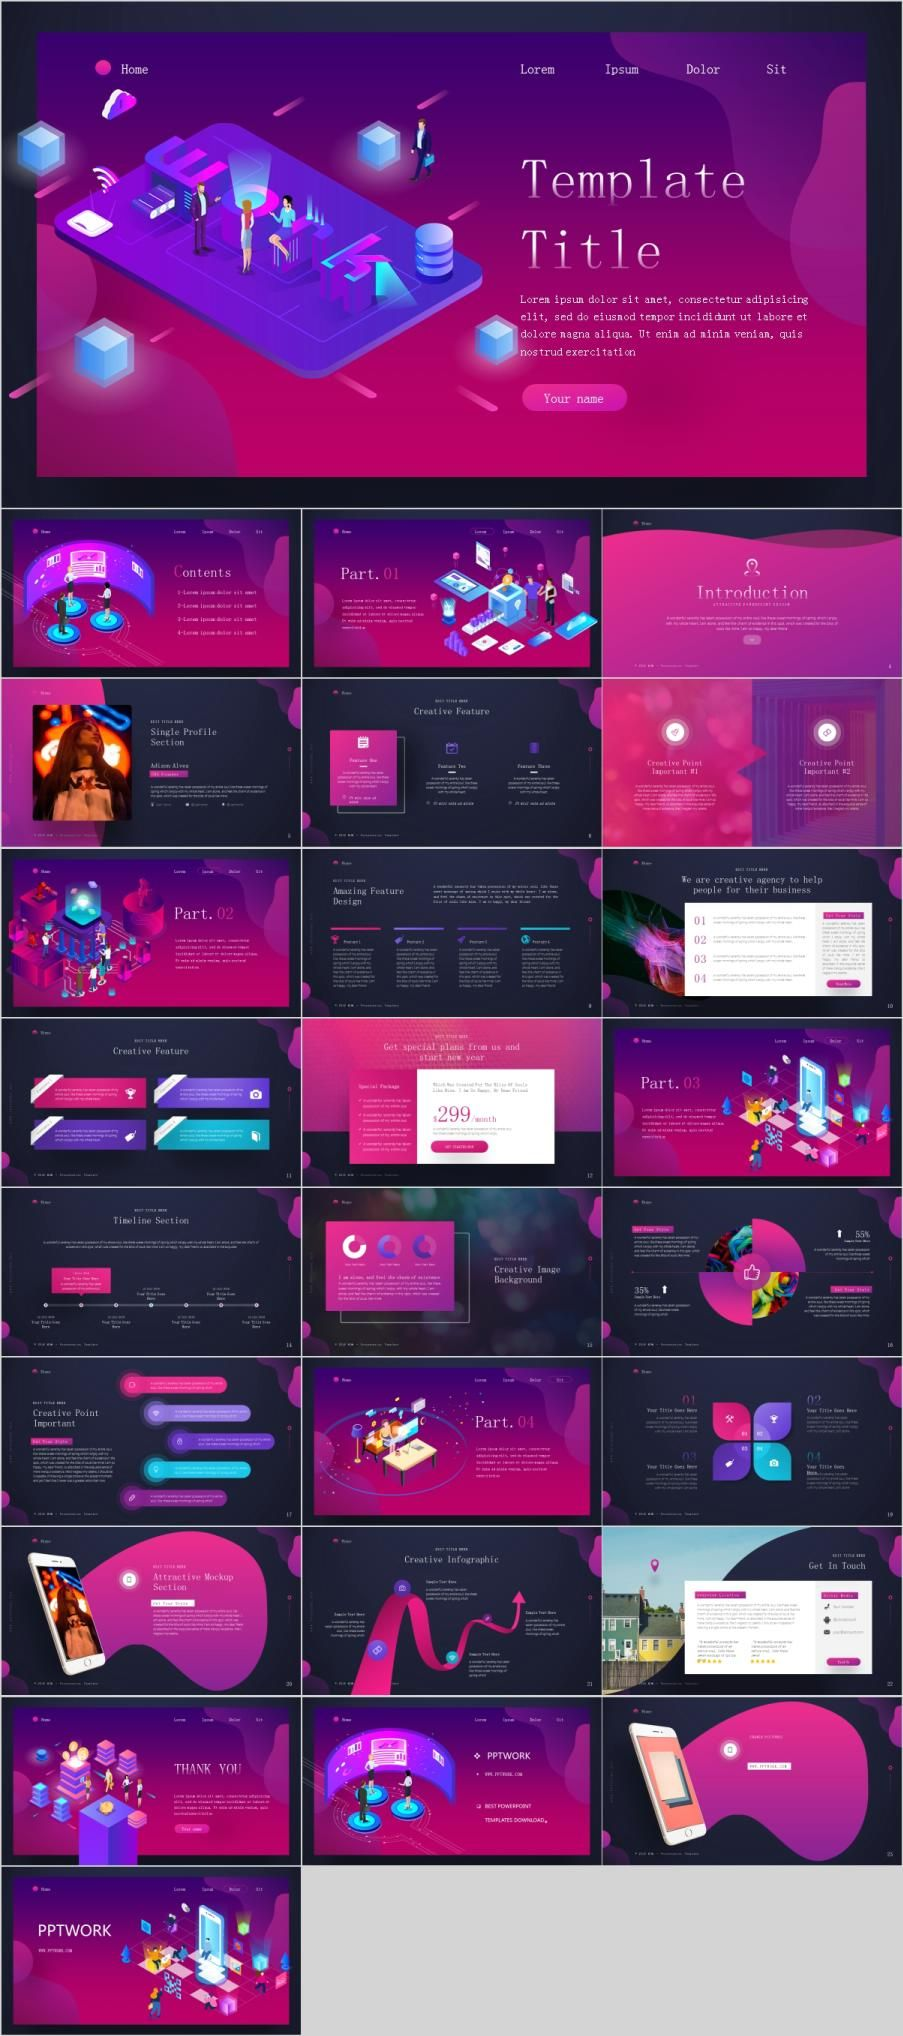 26 Red Web Design Powerpoint Templates Powerpoint Templates Powerpoint Design Templates Creative Powerpoint Templates